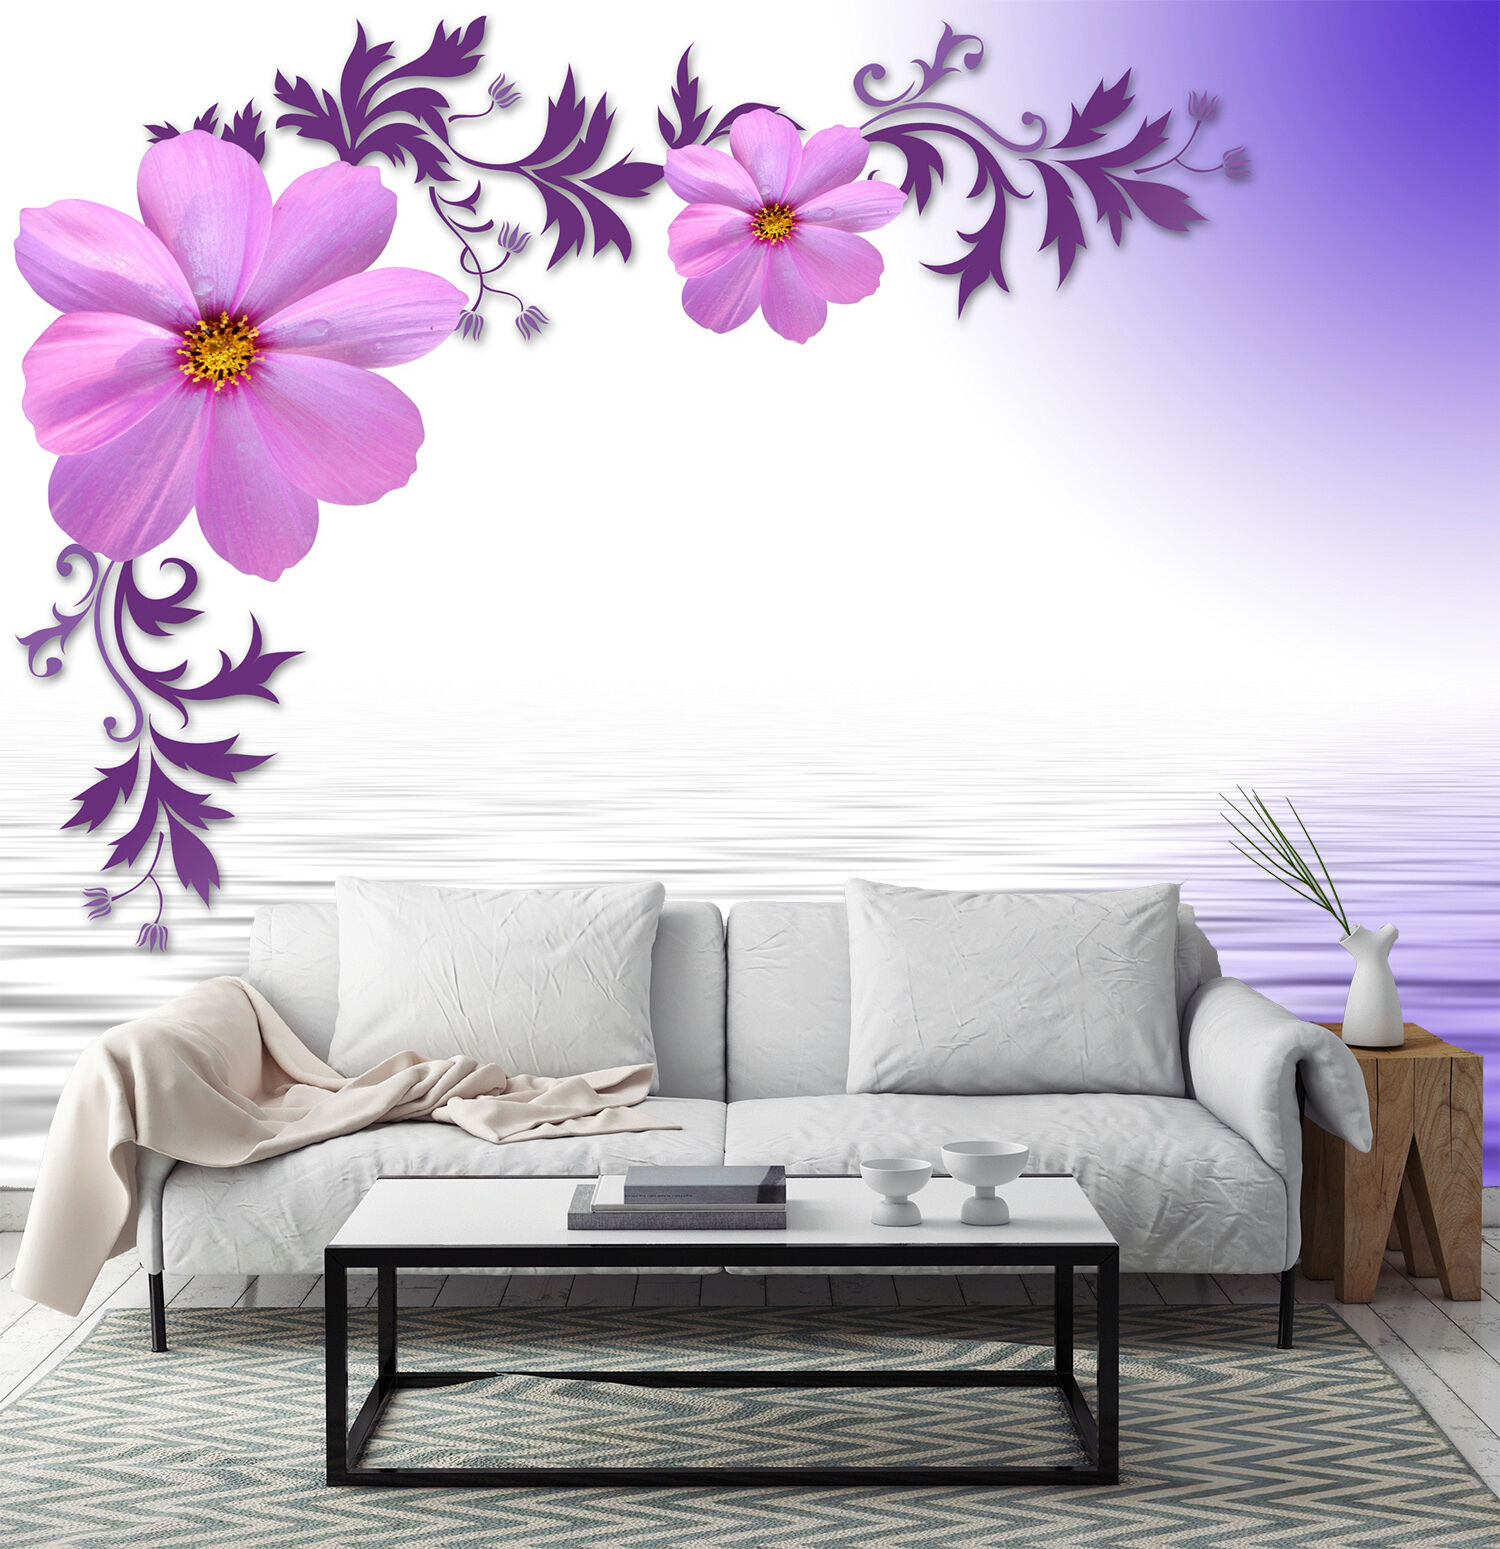 3D Lake, flowers 686 Wall Paper Print Wall Decal Deco Indoor Wall Murals